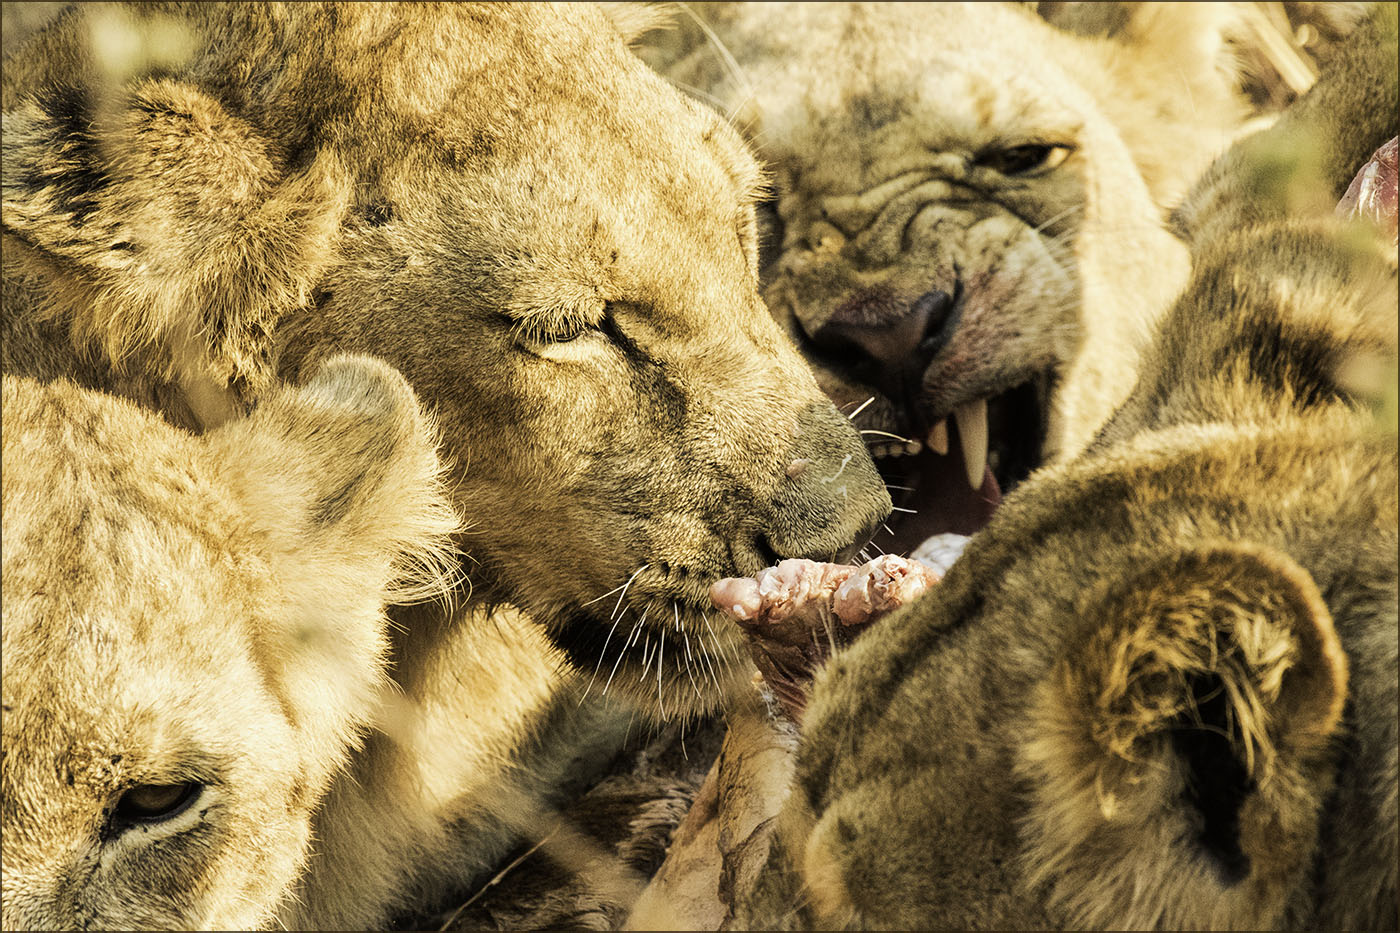 1_Lions on a kill_Ian Johnston.jpg